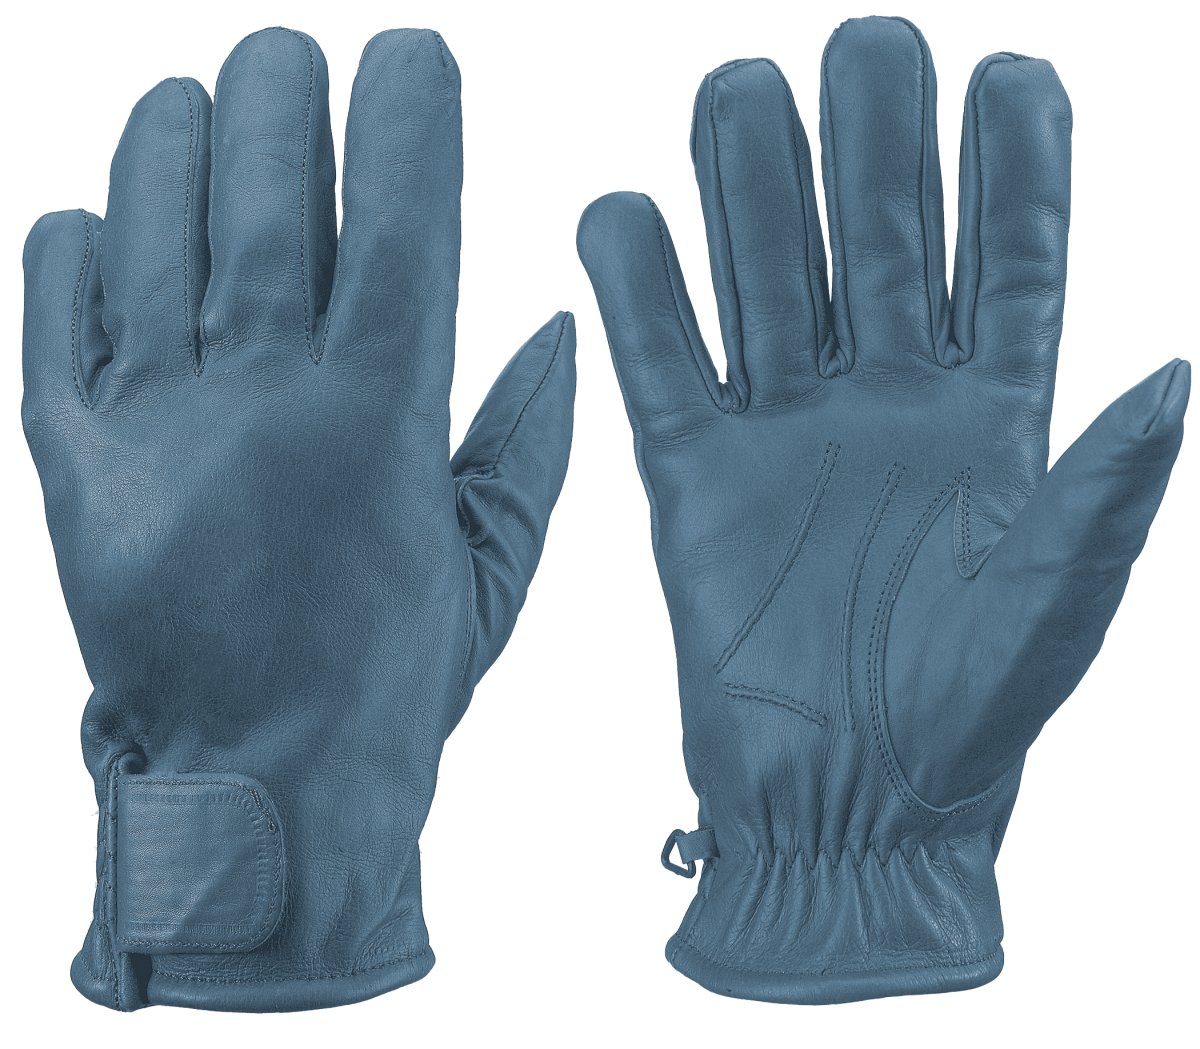 Transparent gloves protective. Nydocs closeout sale for